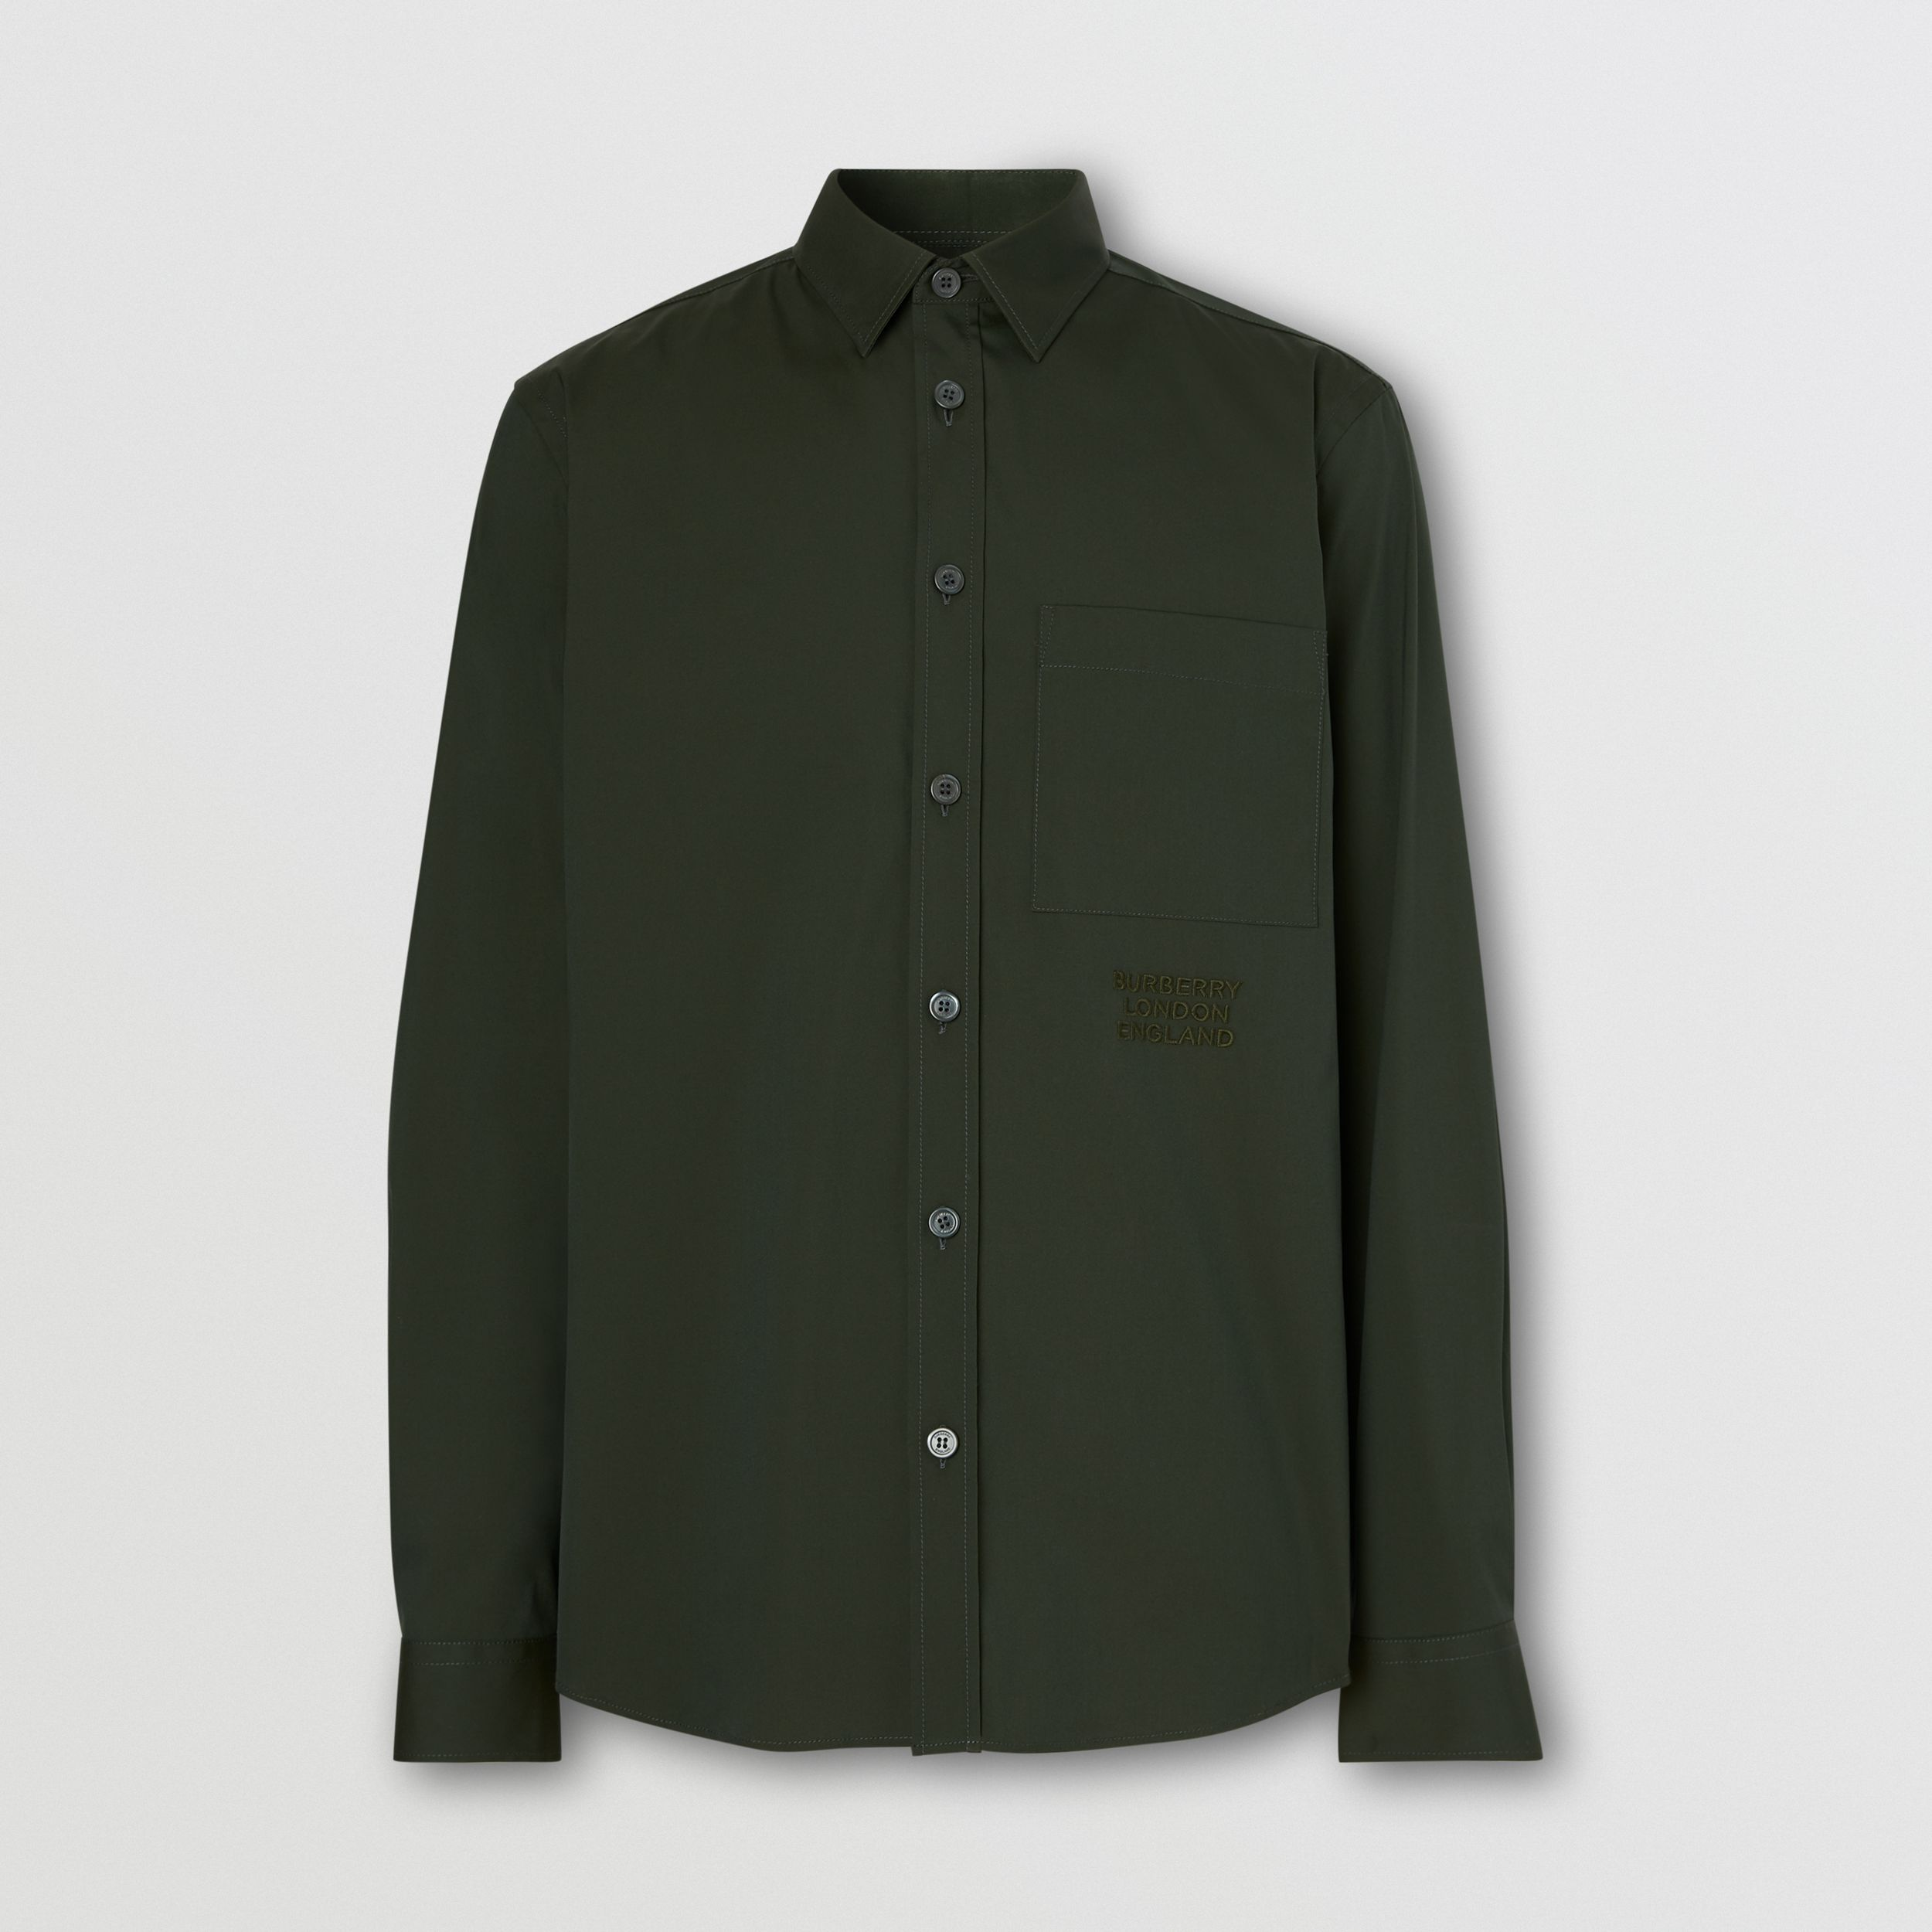 Embroidered Logo Cotton Blend Shirt in Forest Green - Men | Burberry Australia - 4